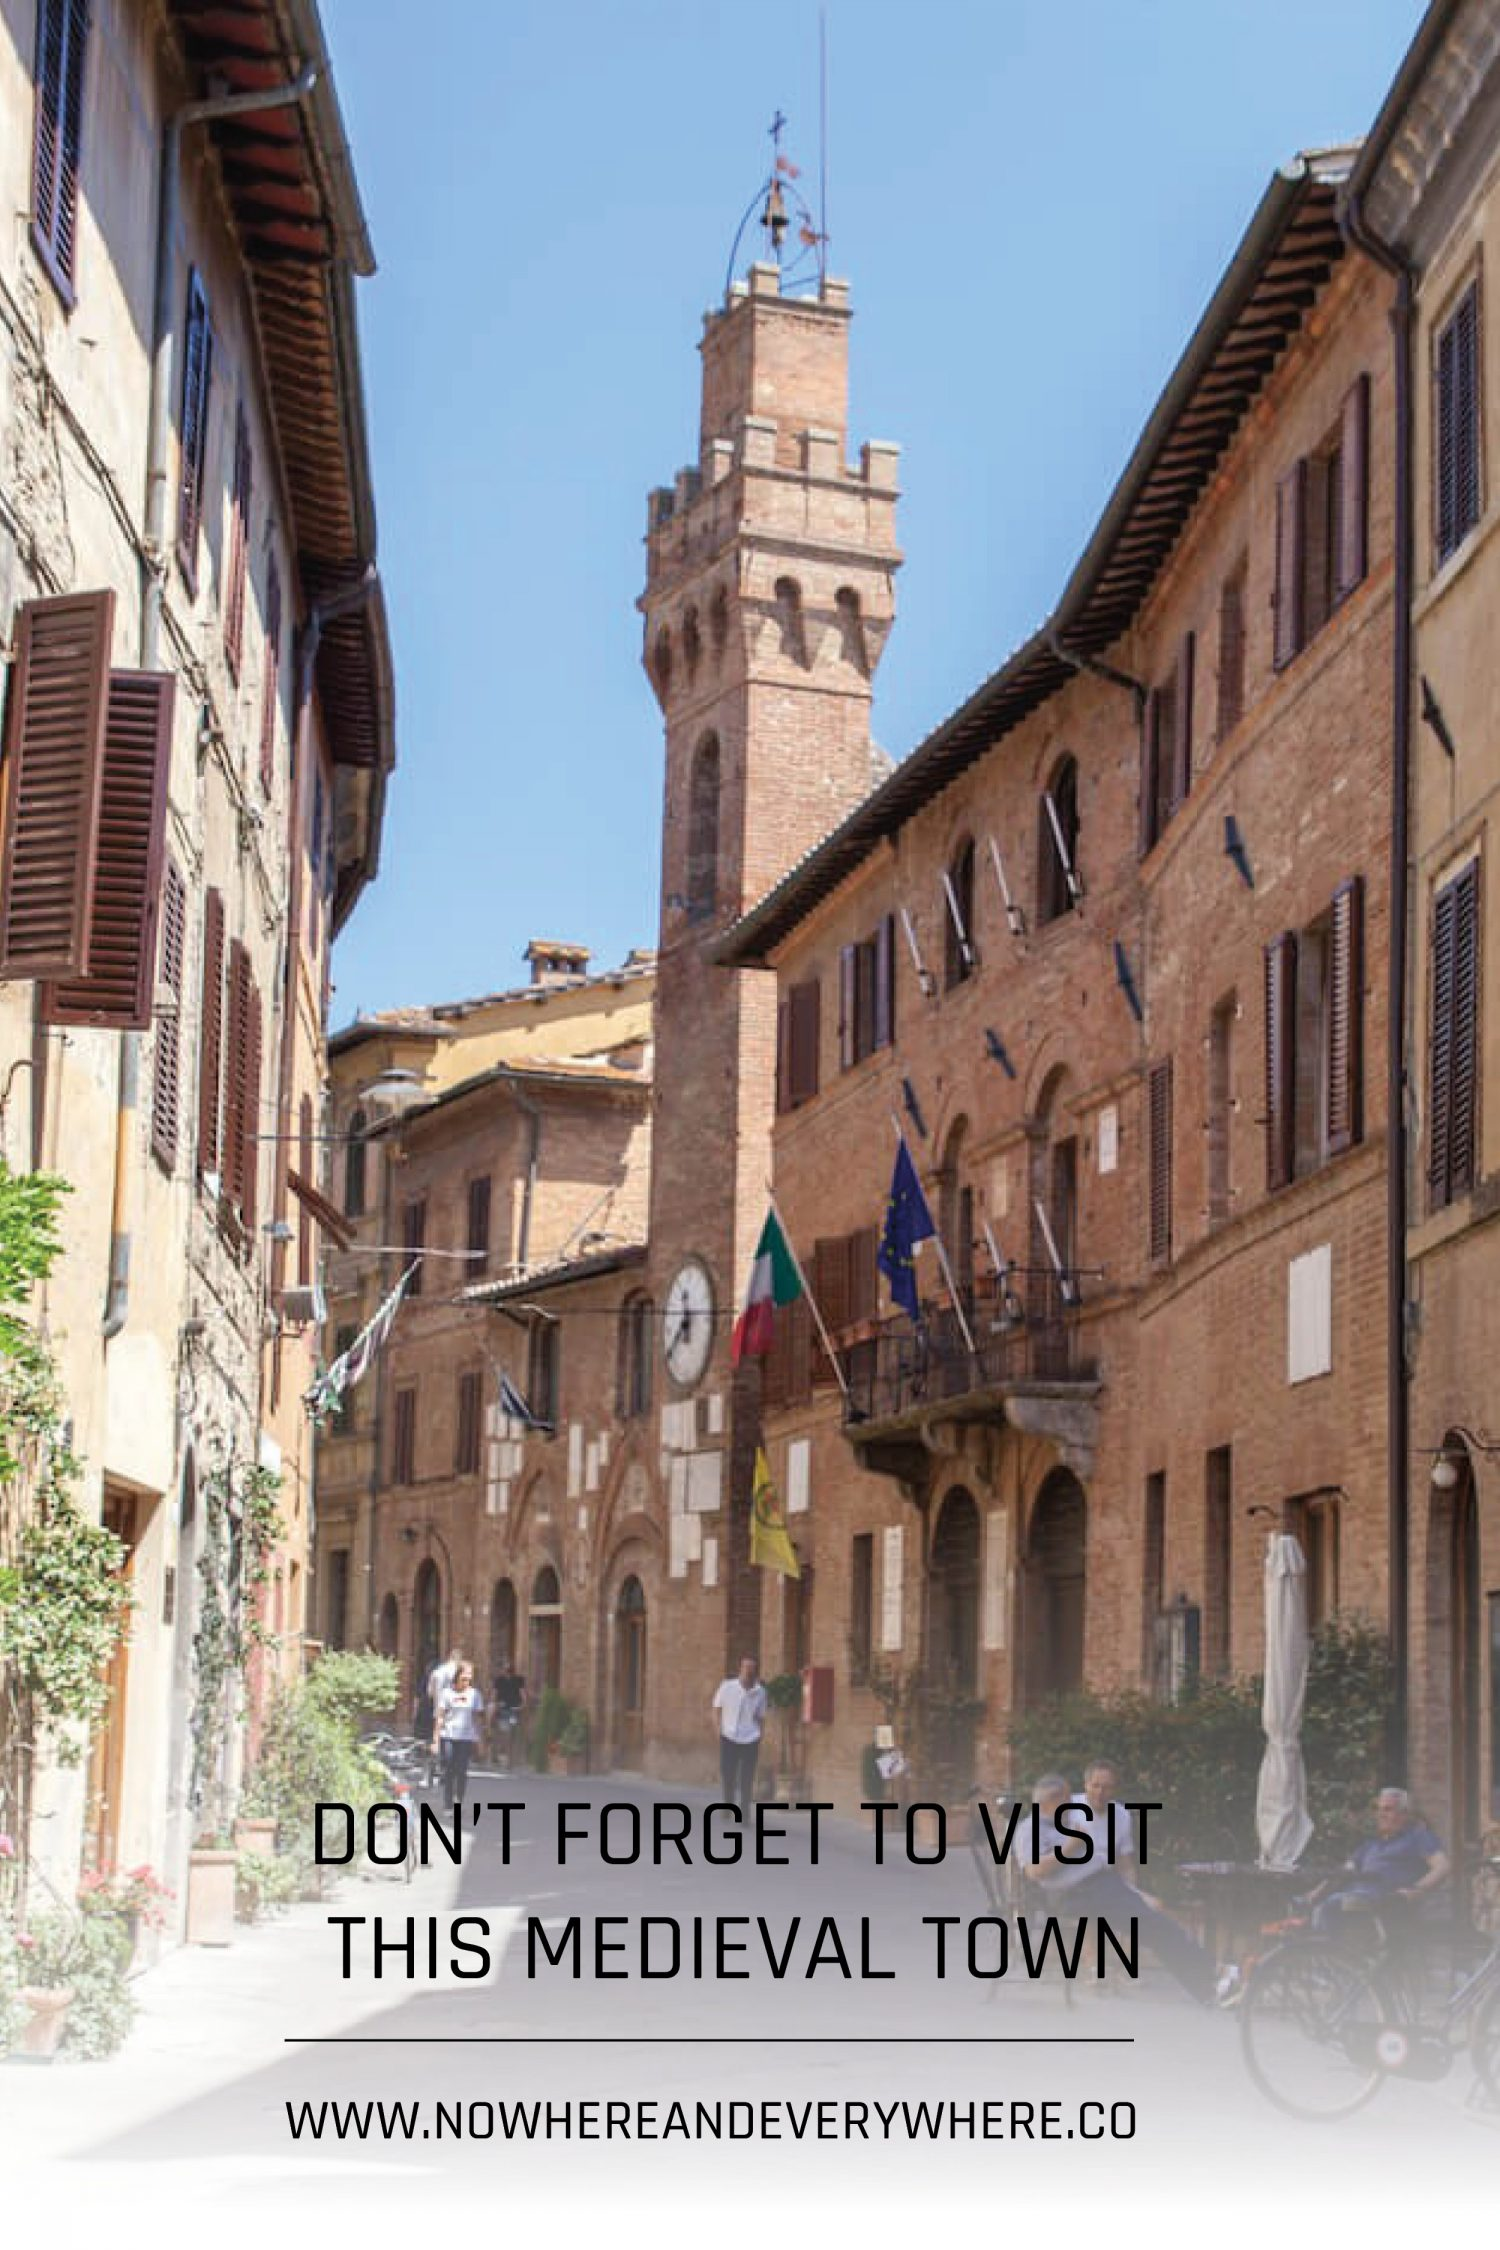 The beautiful, medieval town of Buonconvento Nowhere & Everywhere Sustainable Travel